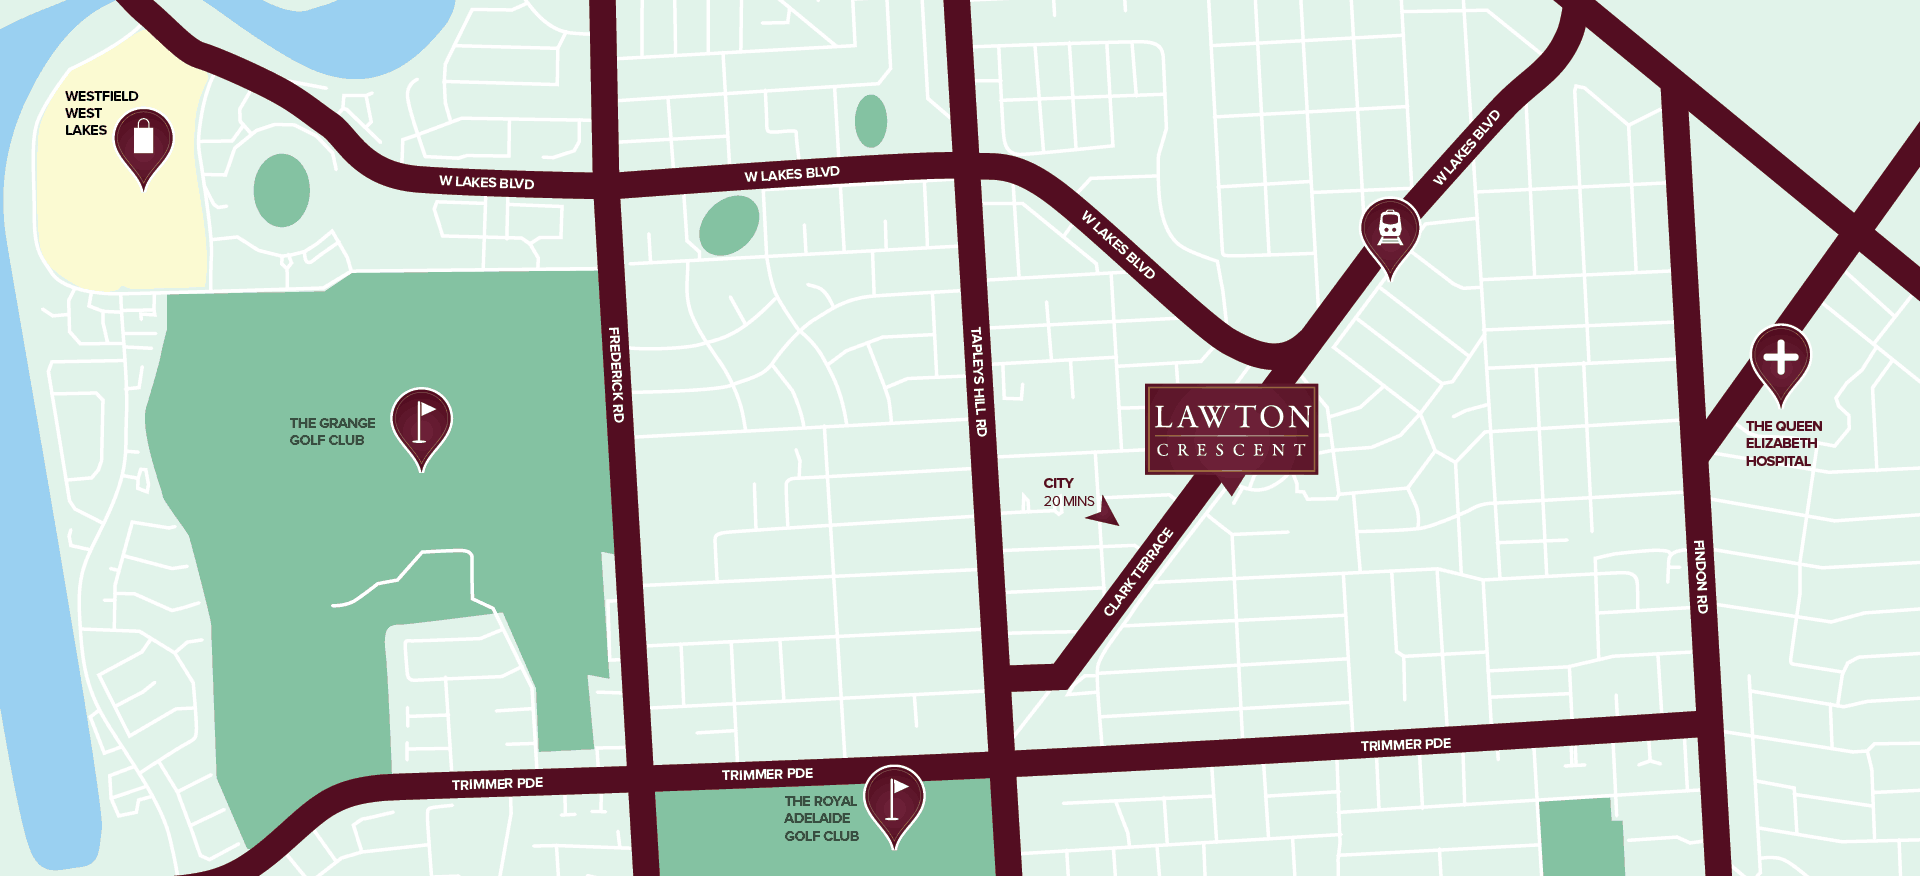 Lawton Crescent location